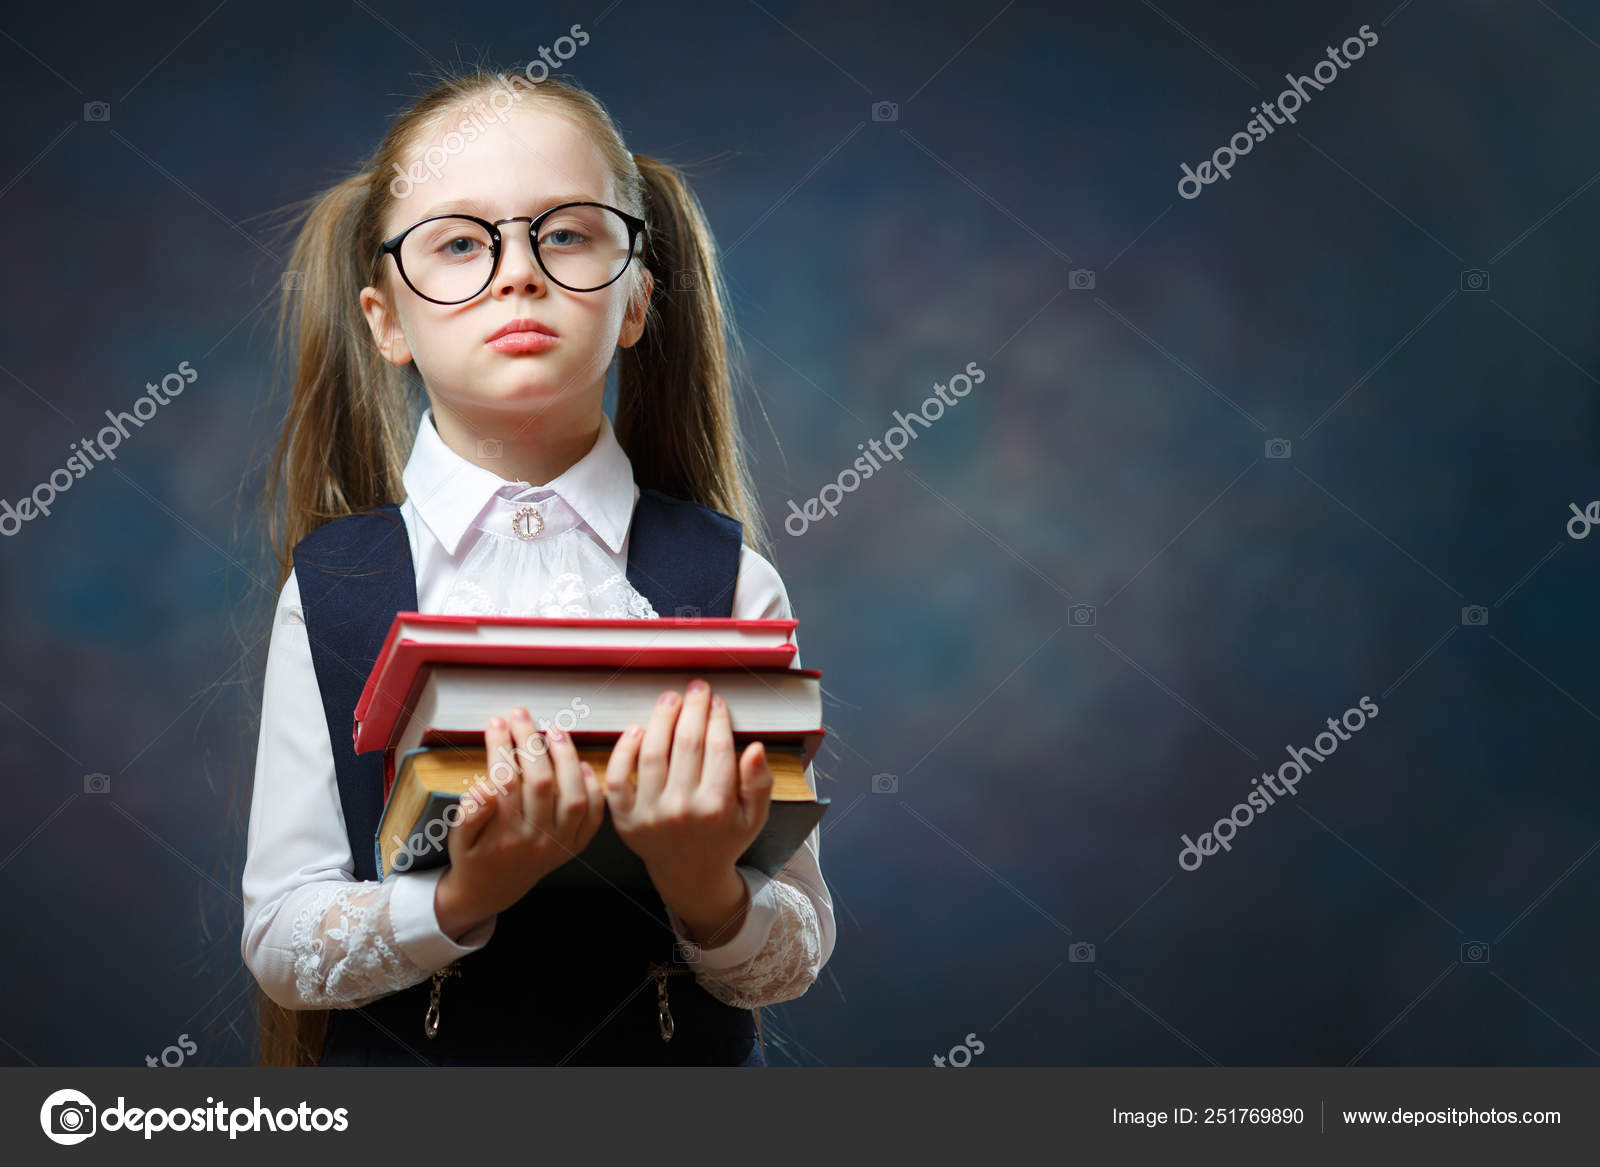 be2f9d7efb83 Serious Schoolgirl Wear Glasses Hold Pile of Book. Adorable Smart  Elementary School Student in Big Spectacle. Clever Little Caucasian Girl.